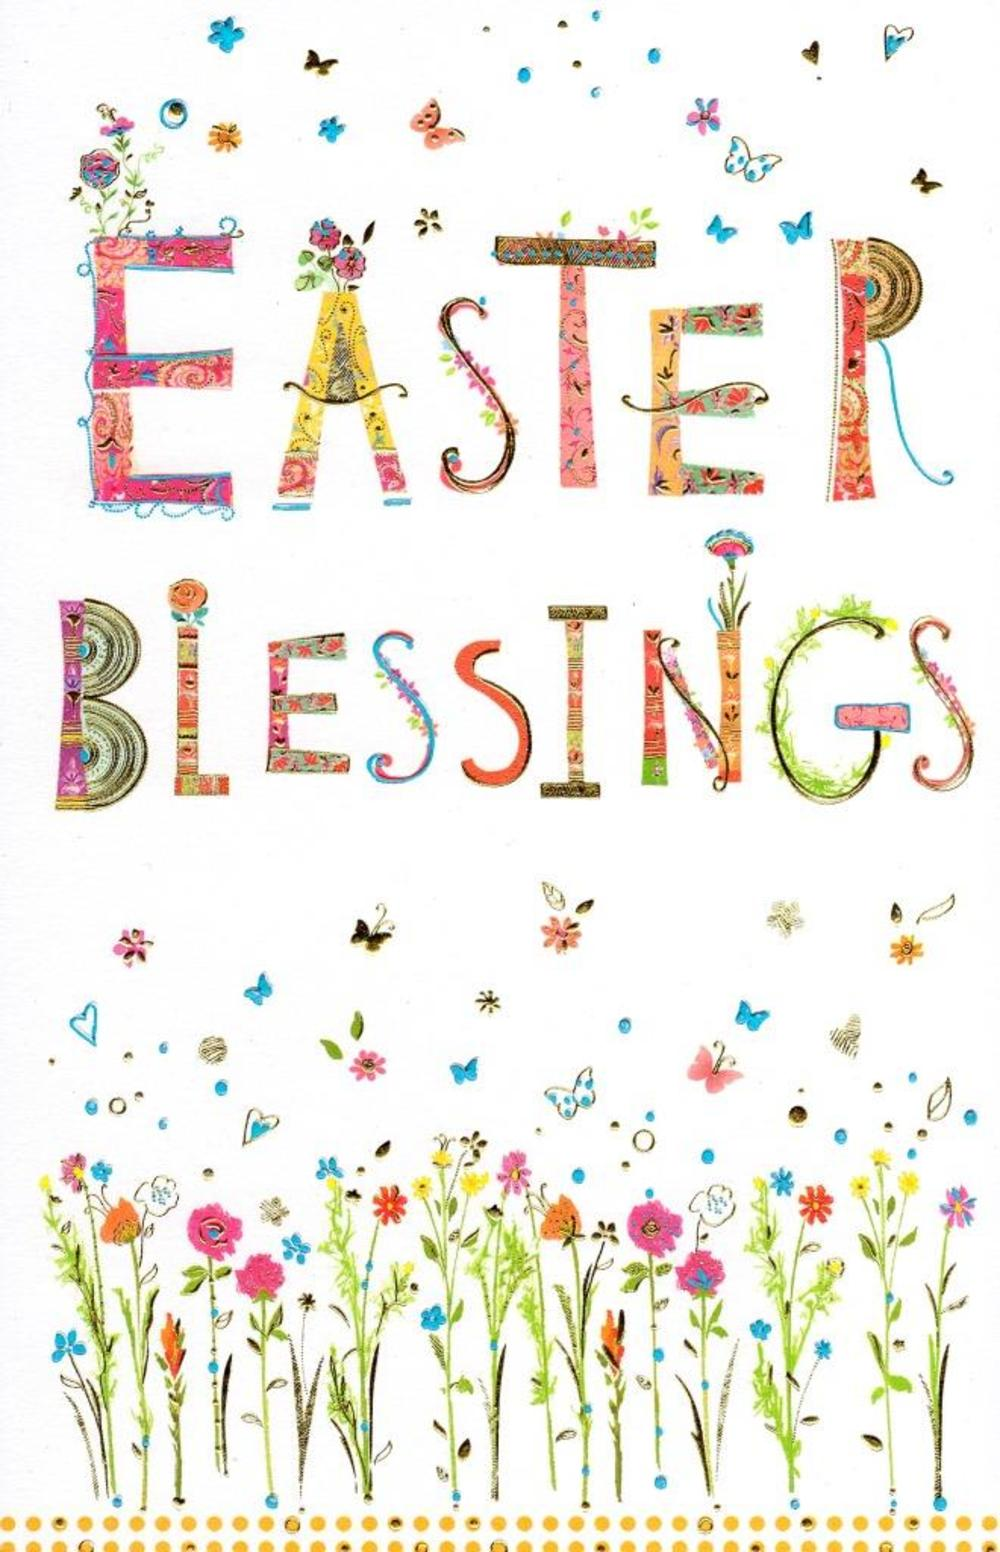 Easter blessings pretty religious greeting card cards love kates easter blessings pretty religious greeting card kristyandbryce Image collections